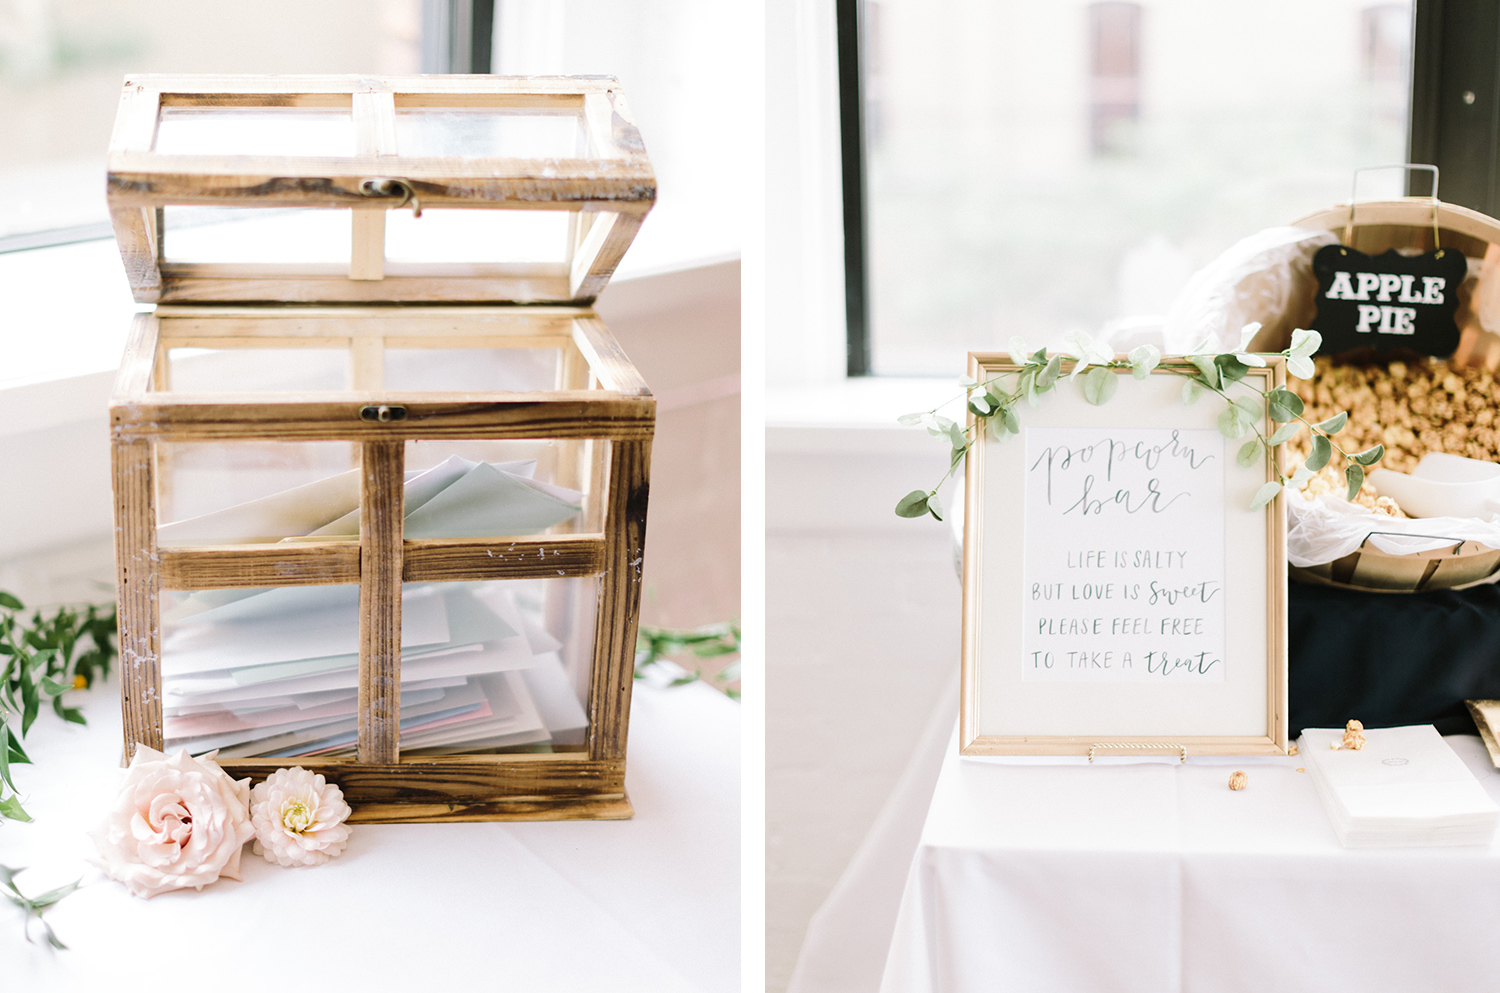 Wedding reception decor featuring a glass card box and a popcorn bar at Loft 310